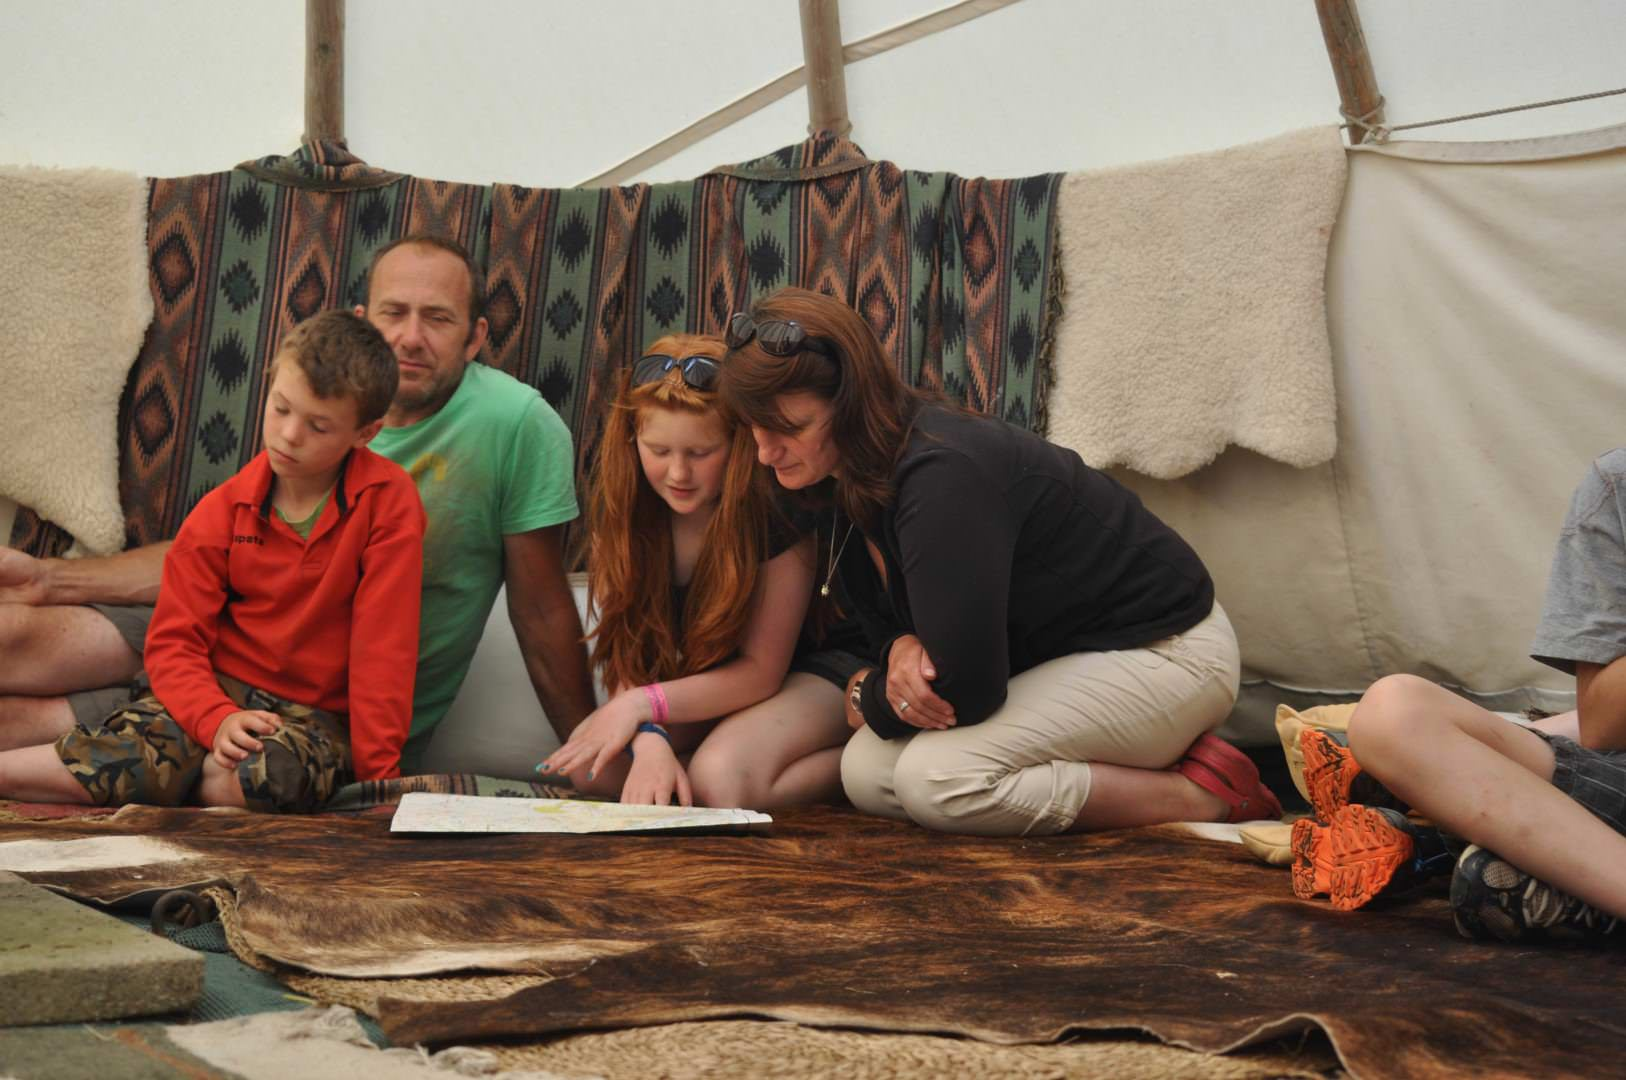 Tipi group planning their activities